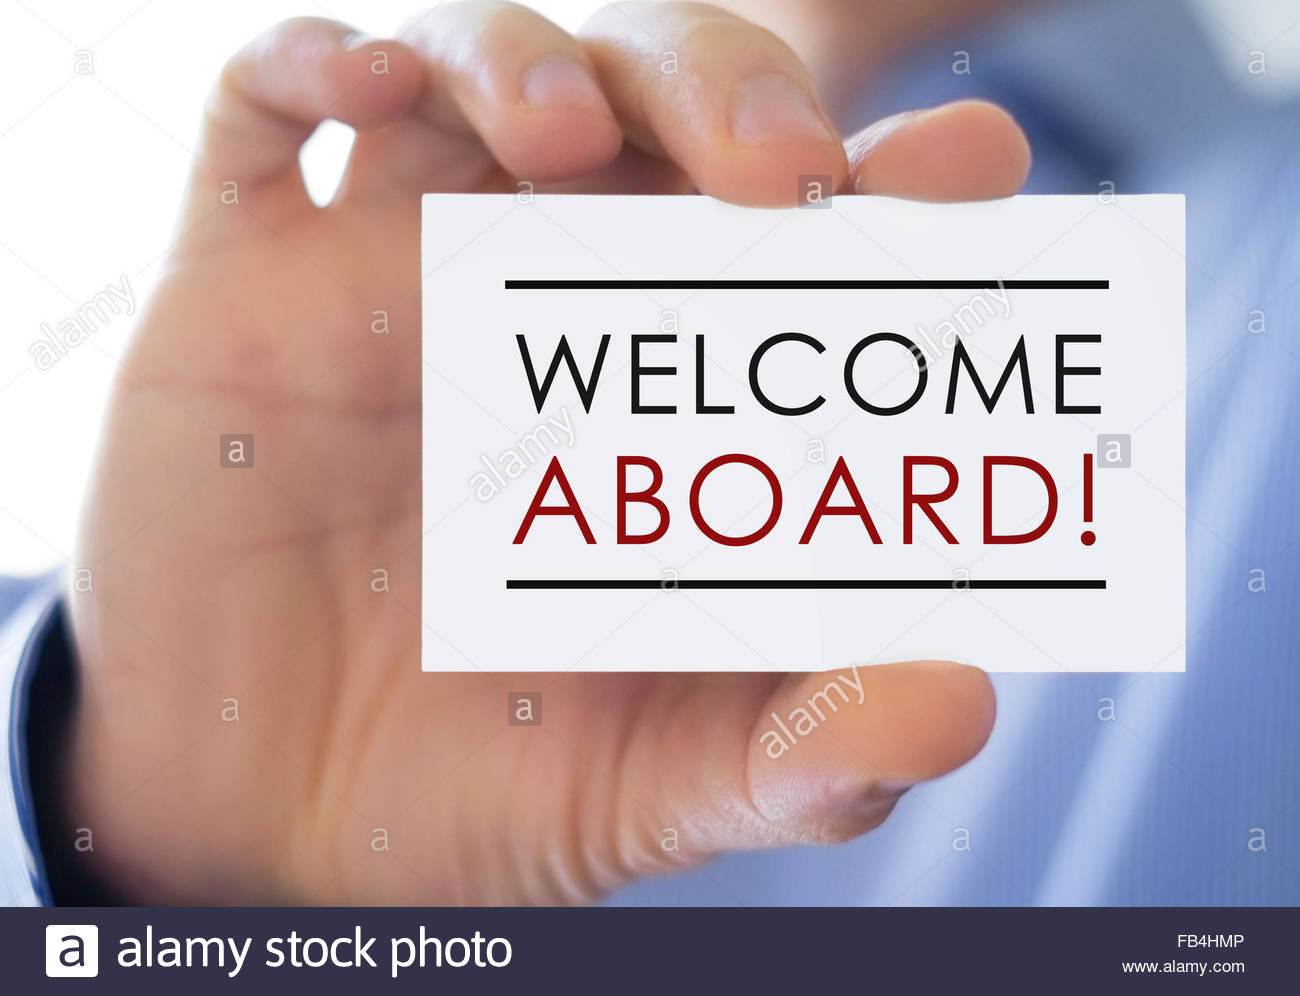 Welcome Aboard - business card - Stock Image